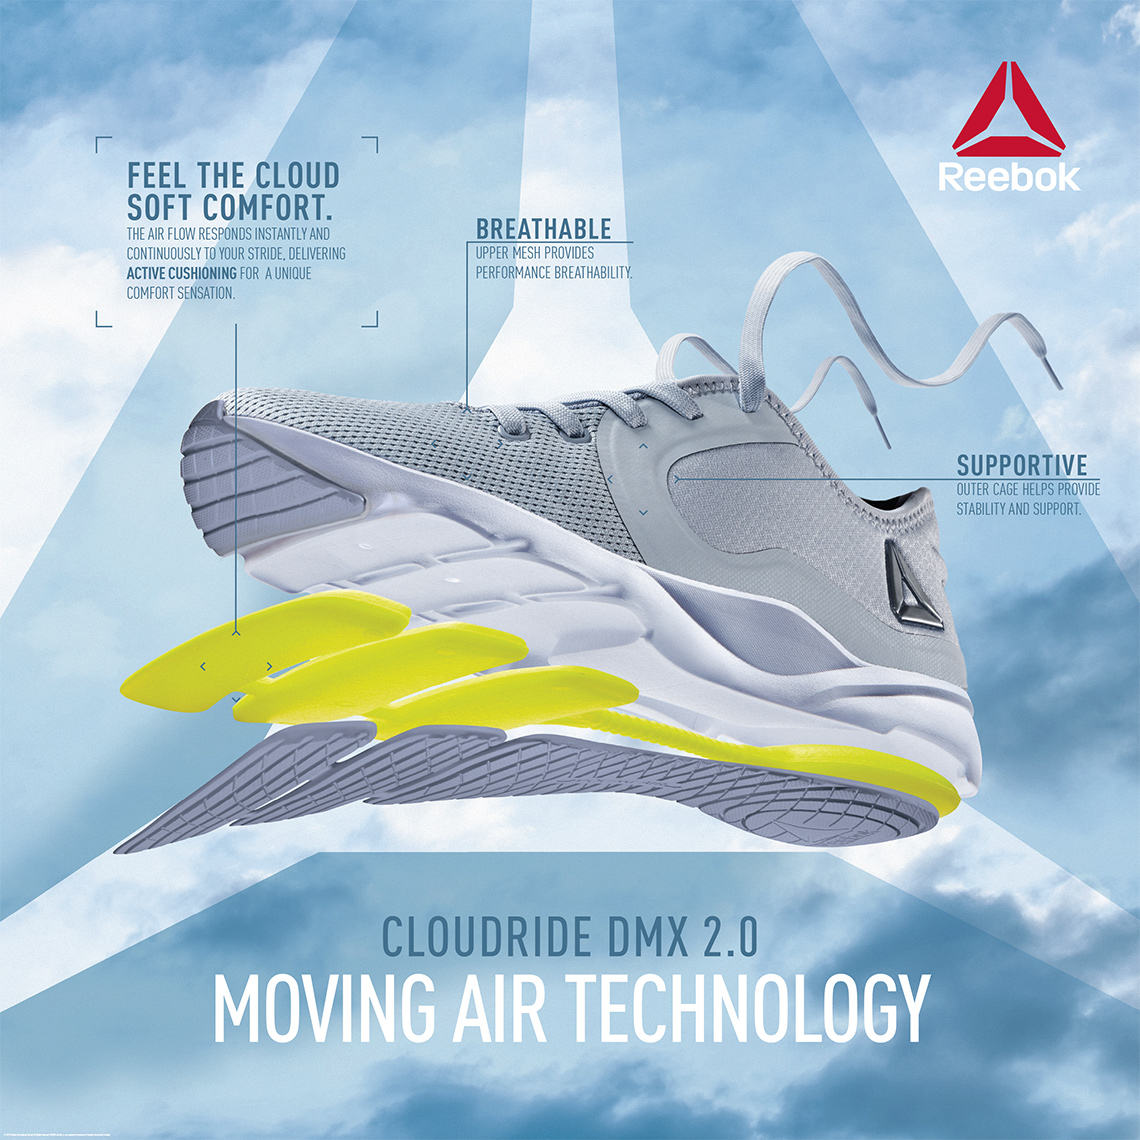 Reebok-Moving-Technology